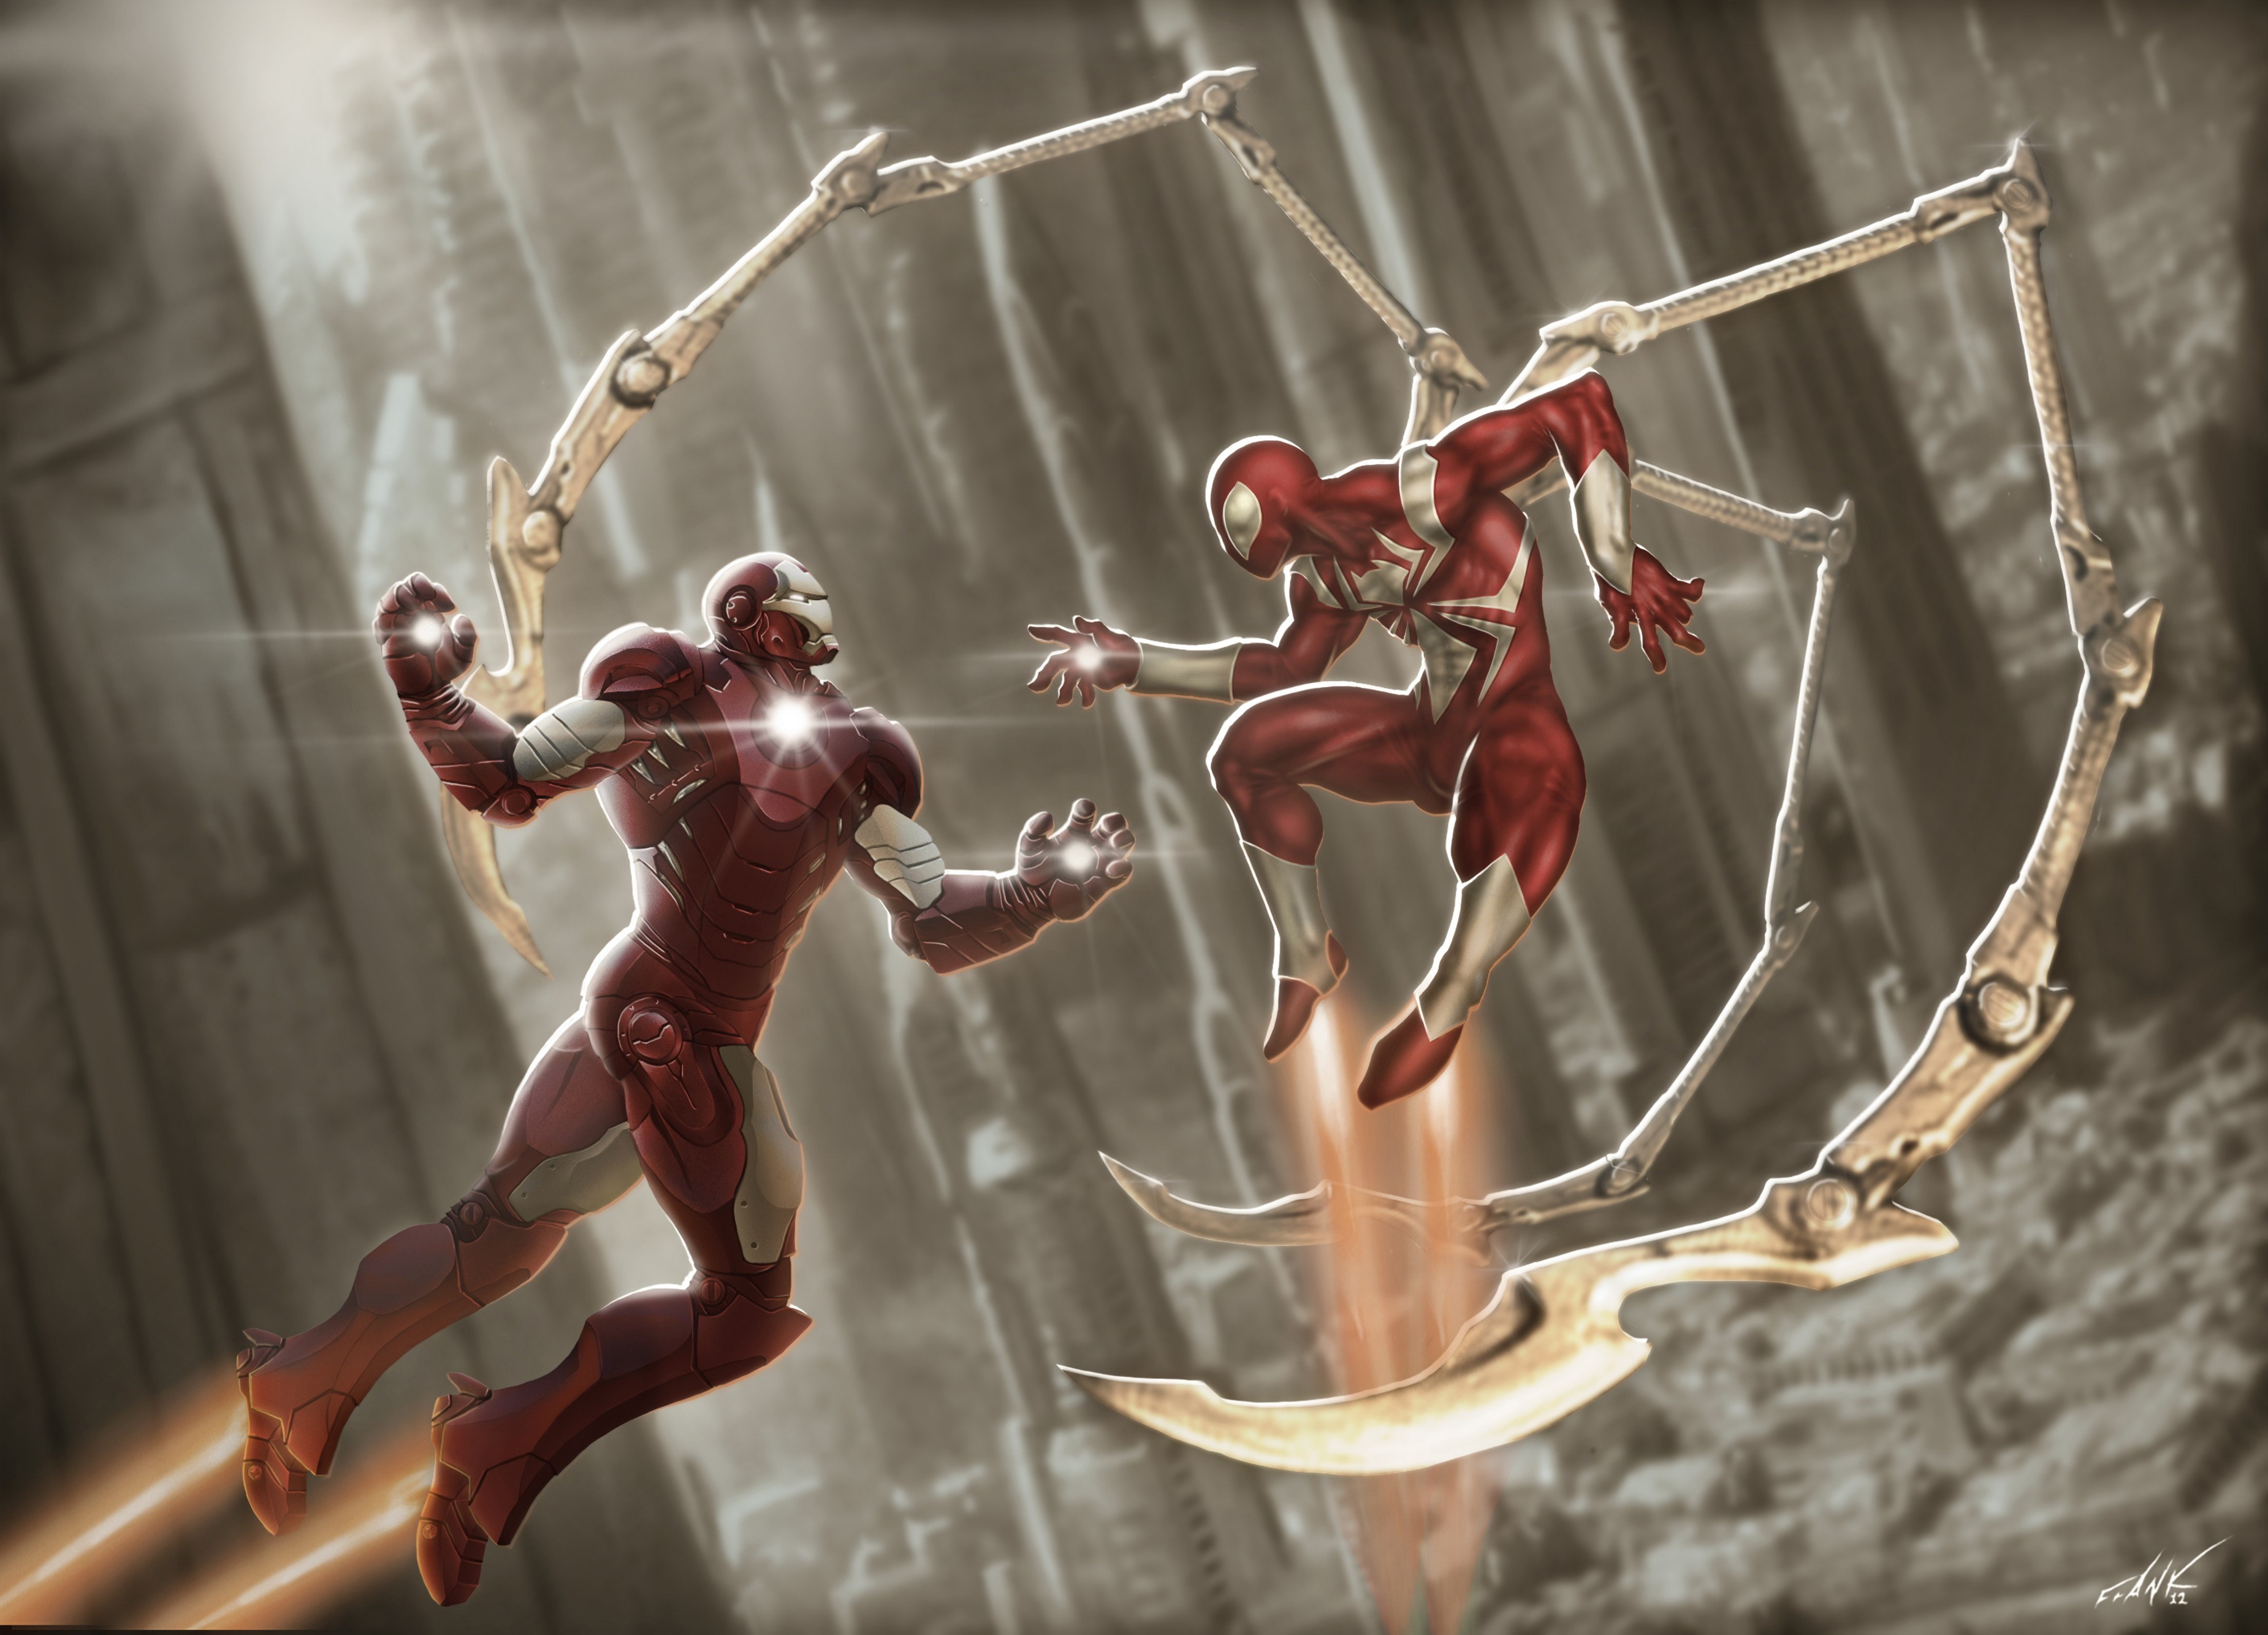 Iron Man And Red Scarlet Spiderman 4k 3700x2667 Wallpaper The Hot Desktop Wallpapers And Backgrounds For Your Pc And Mobile